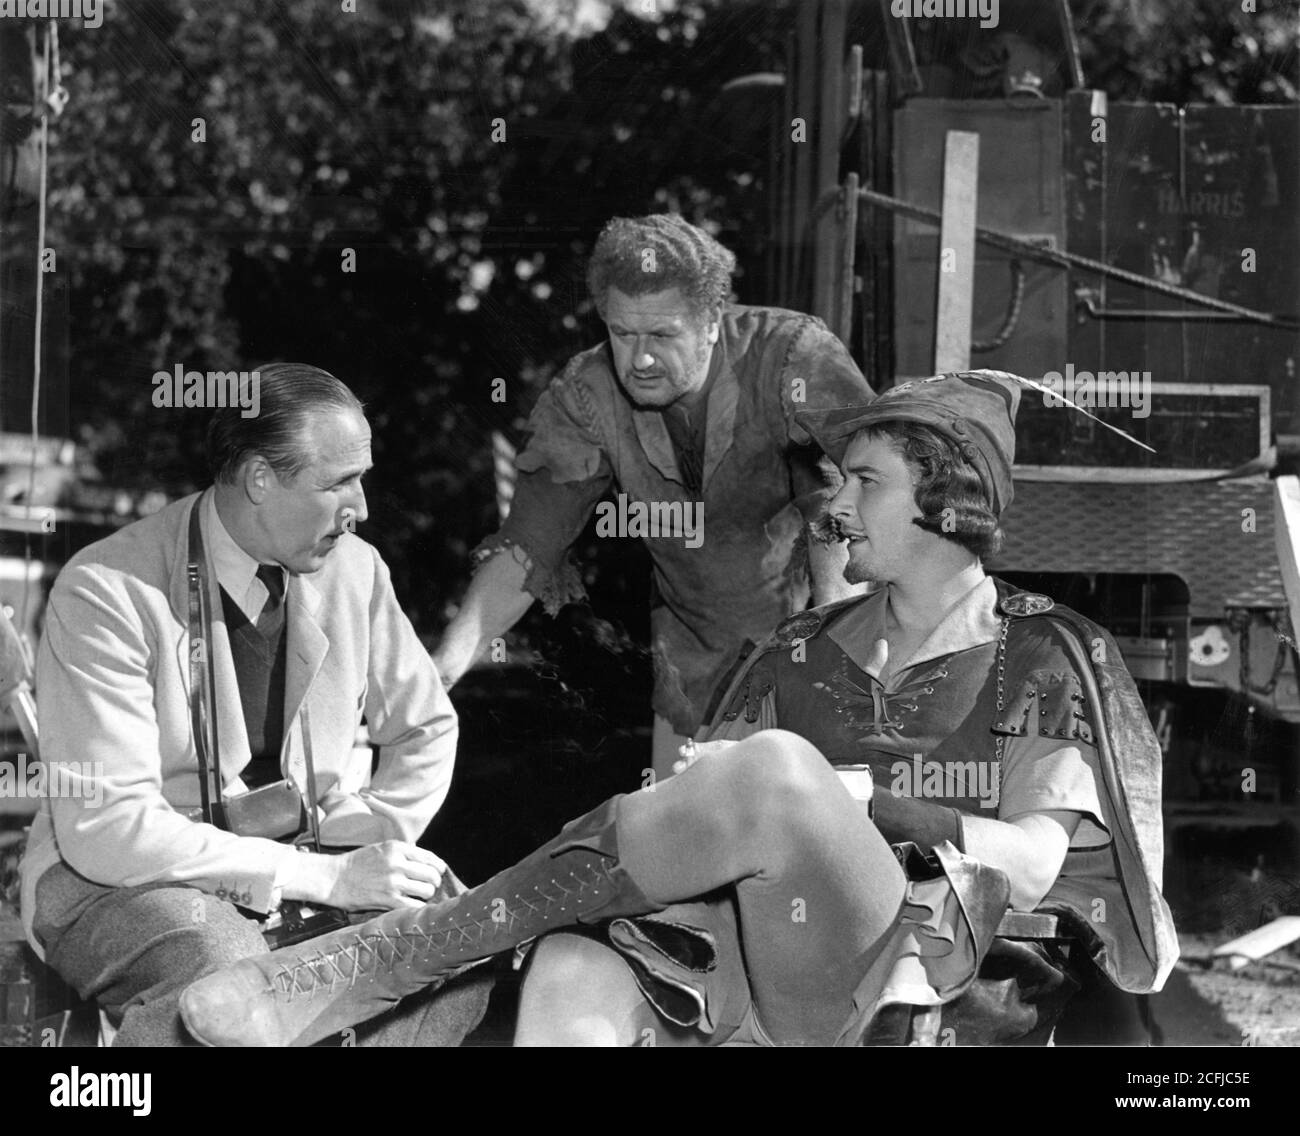 Director WILLIAM KEIGHLEY ALAN HALE and ERROL FLYNN on set location candid  in Chico California during filming of THE ADVENTURES OF ROBIN HOOD 1938  directors MICHAEL CURTIZ and WILLIAM KEIGHLEY music Erich